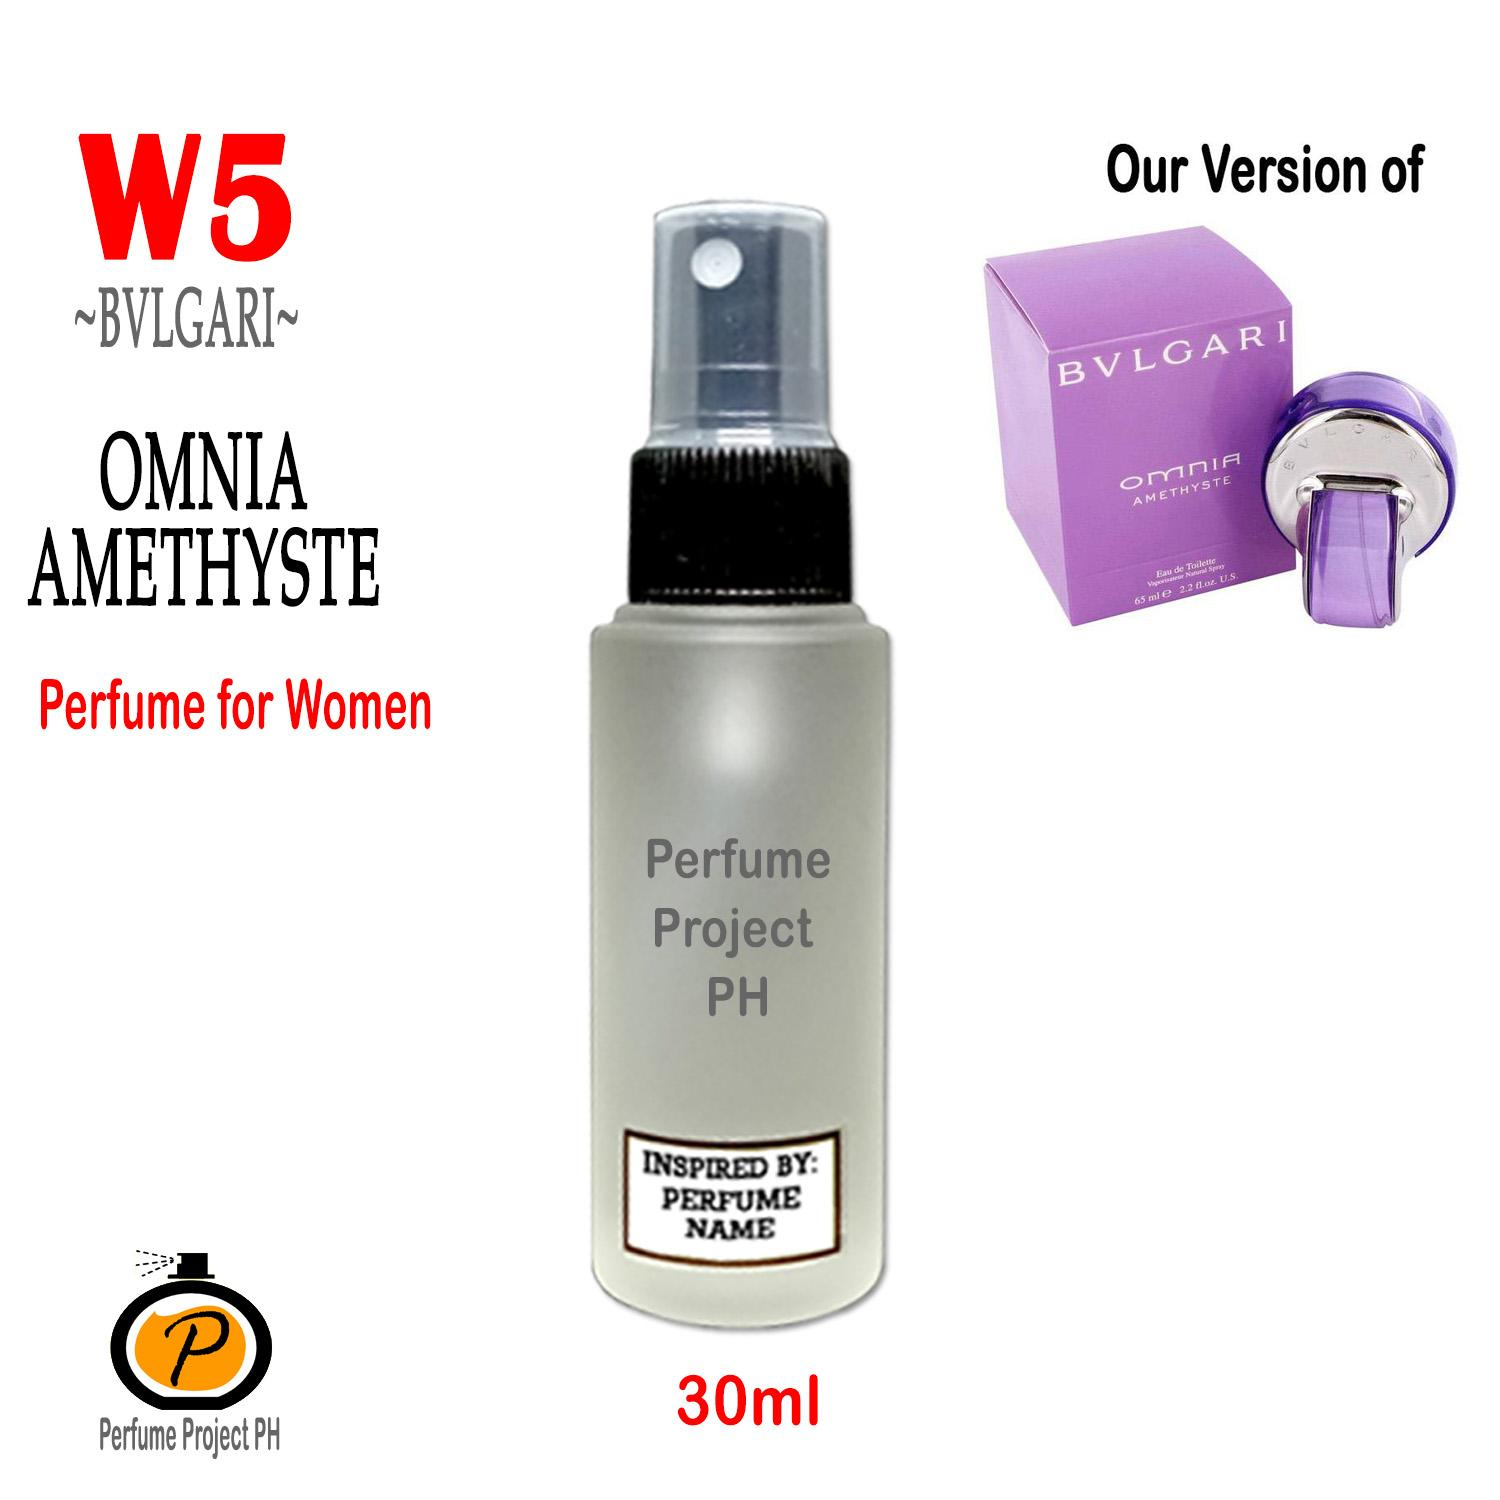 eca6408dc24 PERFUME PROJECT PH (30ml Round) W5 our version of Omnia Amethyste by  Bulgari Inspired